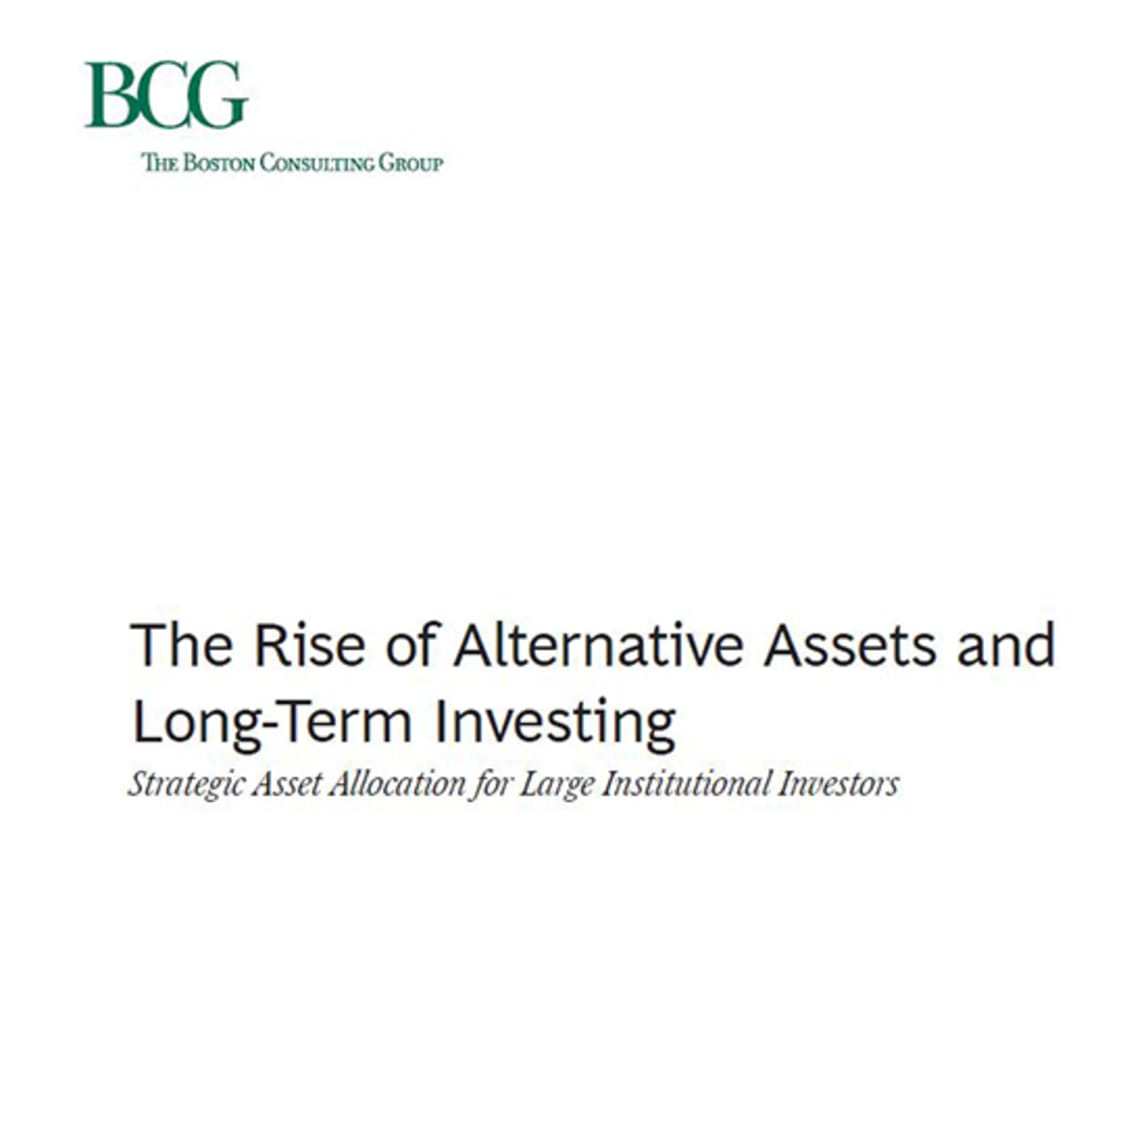 The Rise of Alternative Assets and Long-Term Investing: Strategic